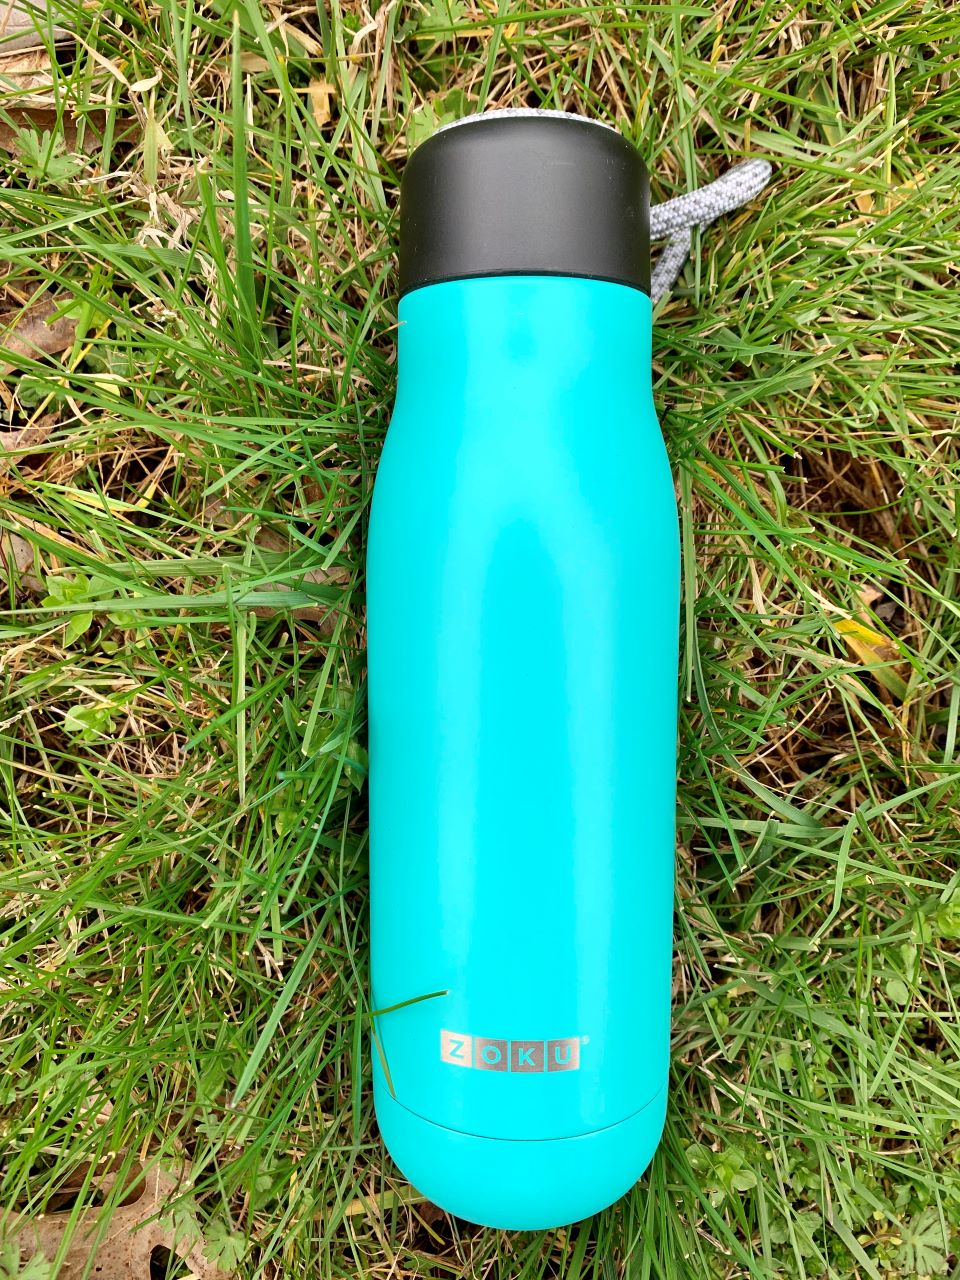 Zoku Stainless Steel water bottle with lanyard #ad